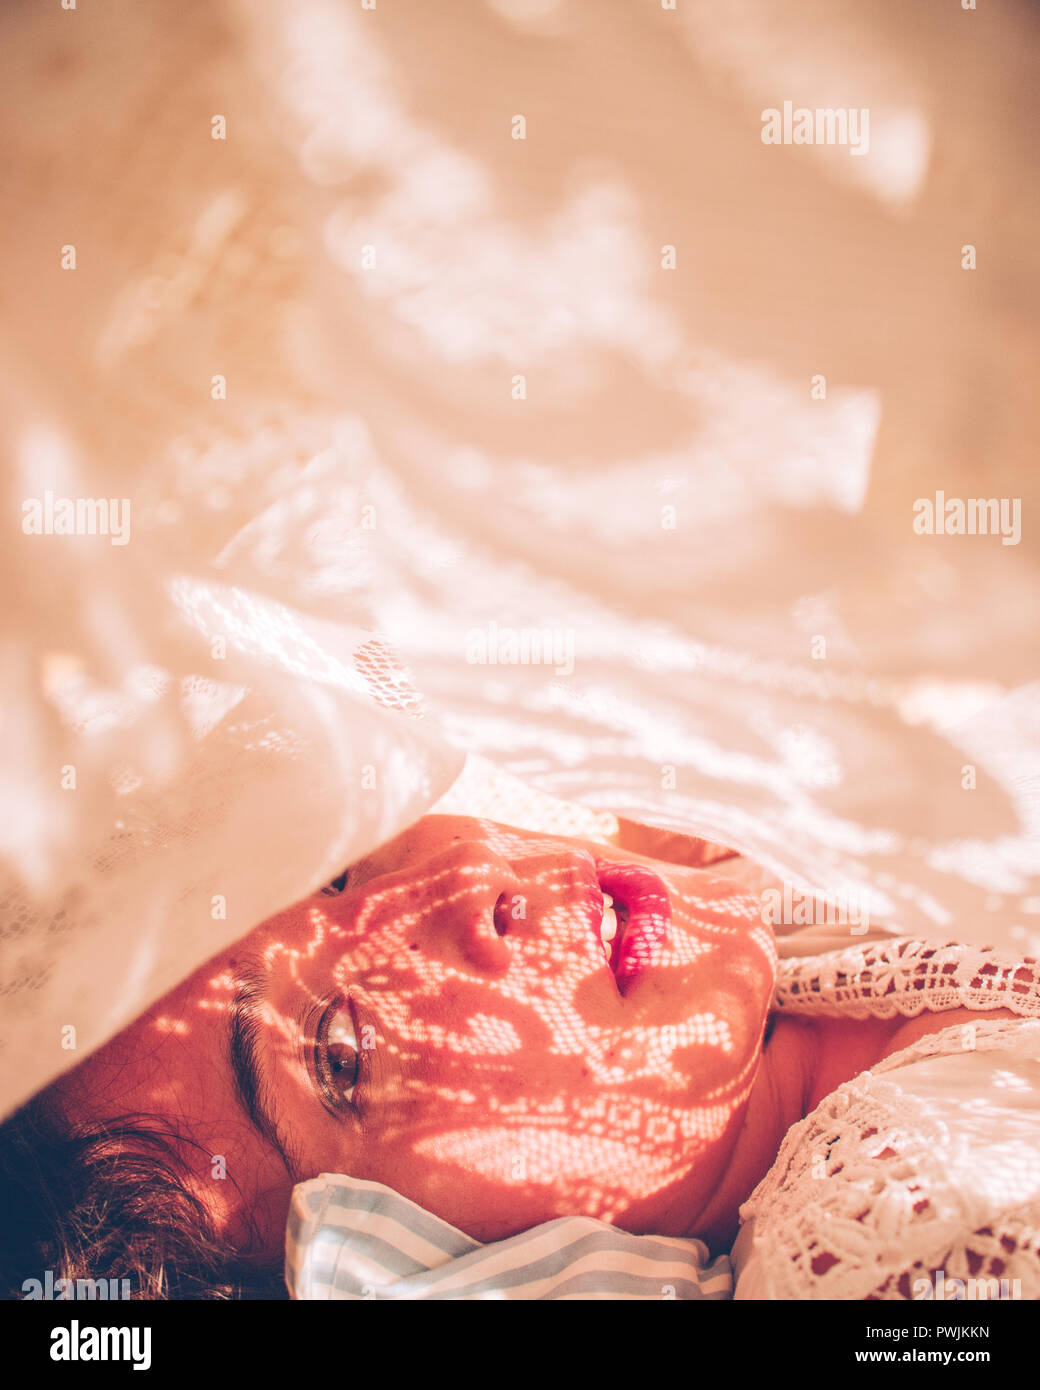 Under the Sheets - Stock Image